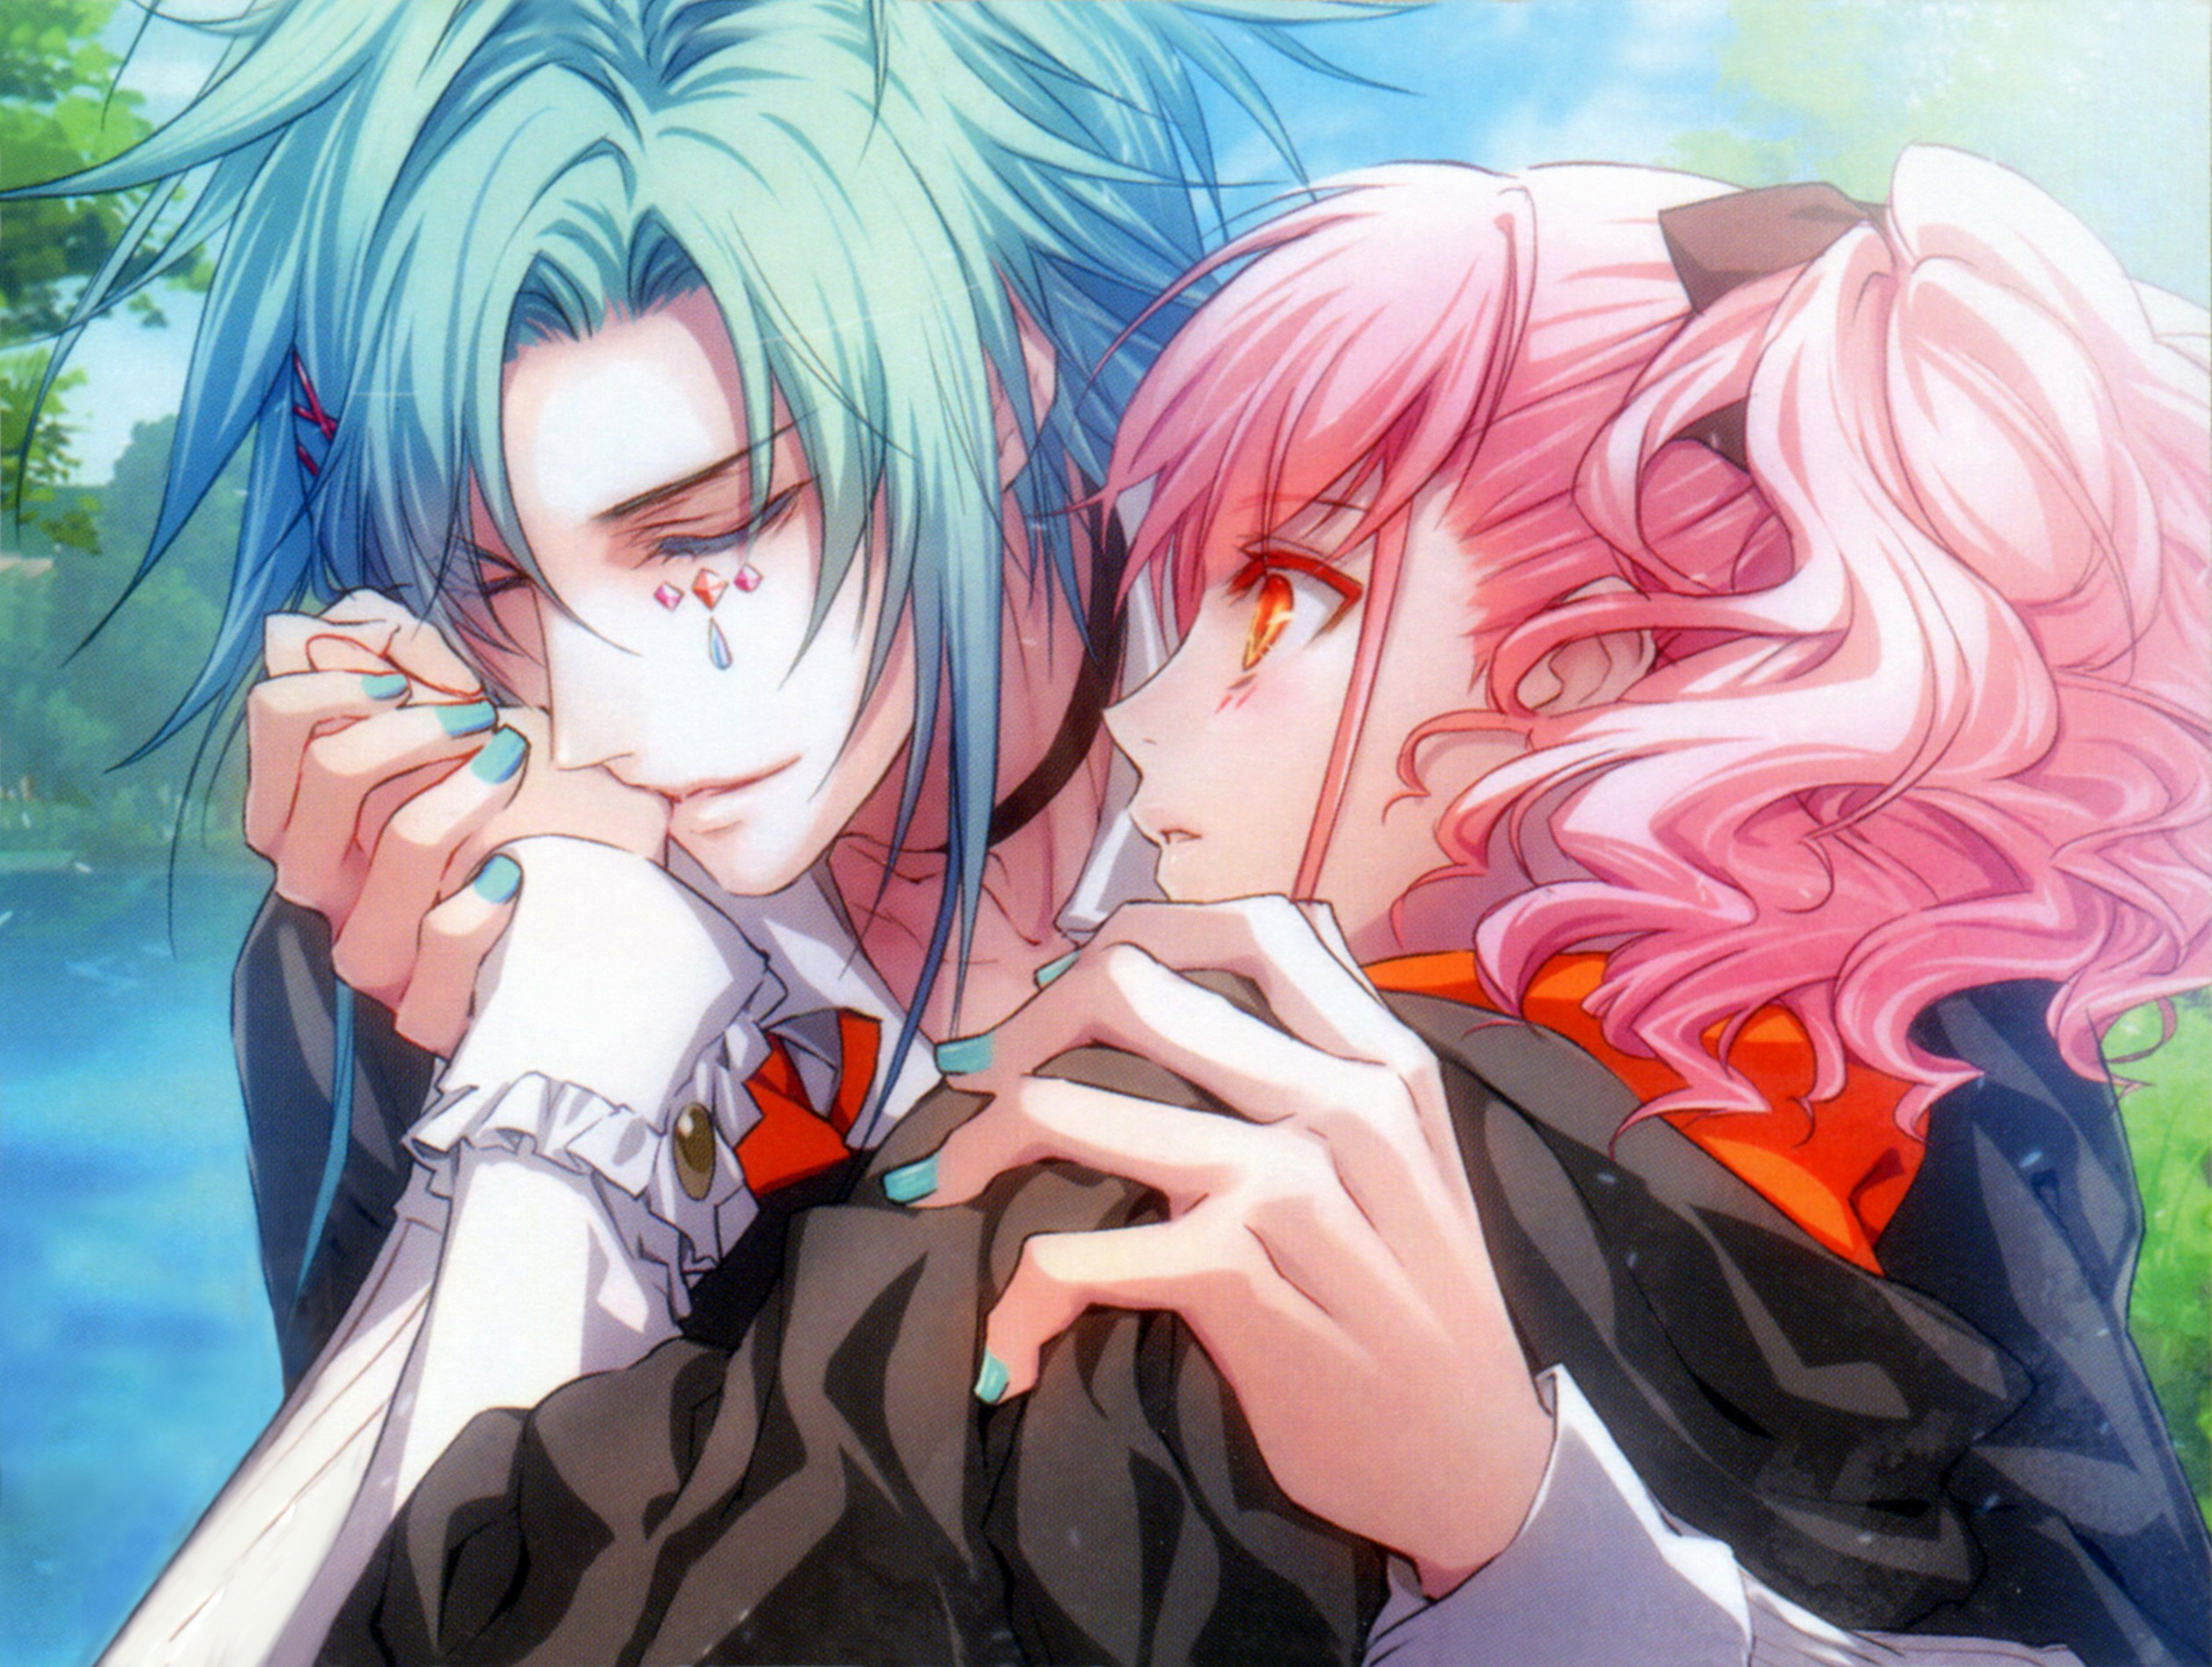 Anime wand of fortune otome games wand of fortune for Wand of fortune